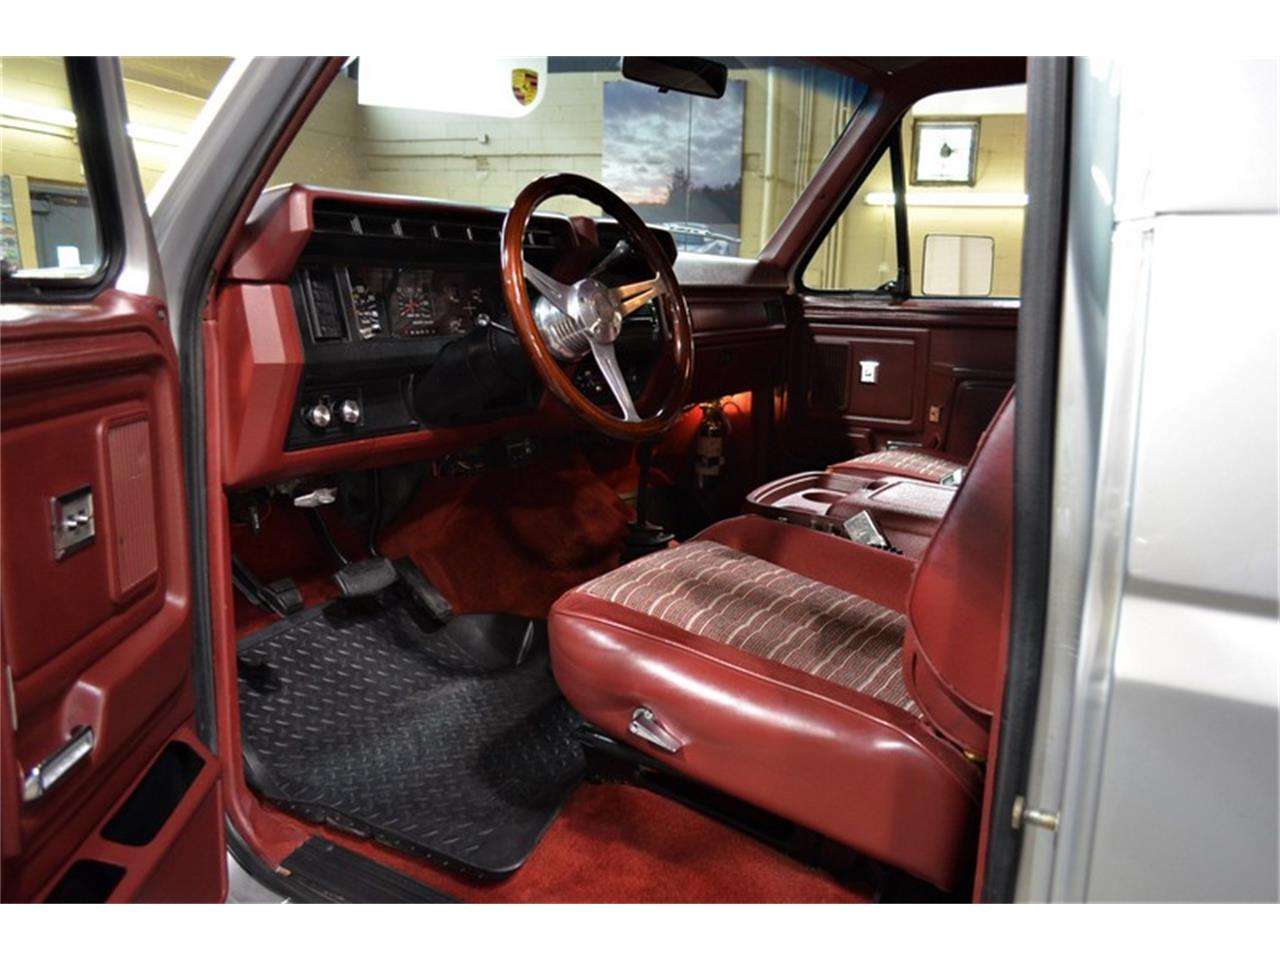 1983 Ford Bronco For Sale Cc 1113917 1980 Interior Large Picture Of 4250000 Offered By Autosport Designs Inc Nvi5